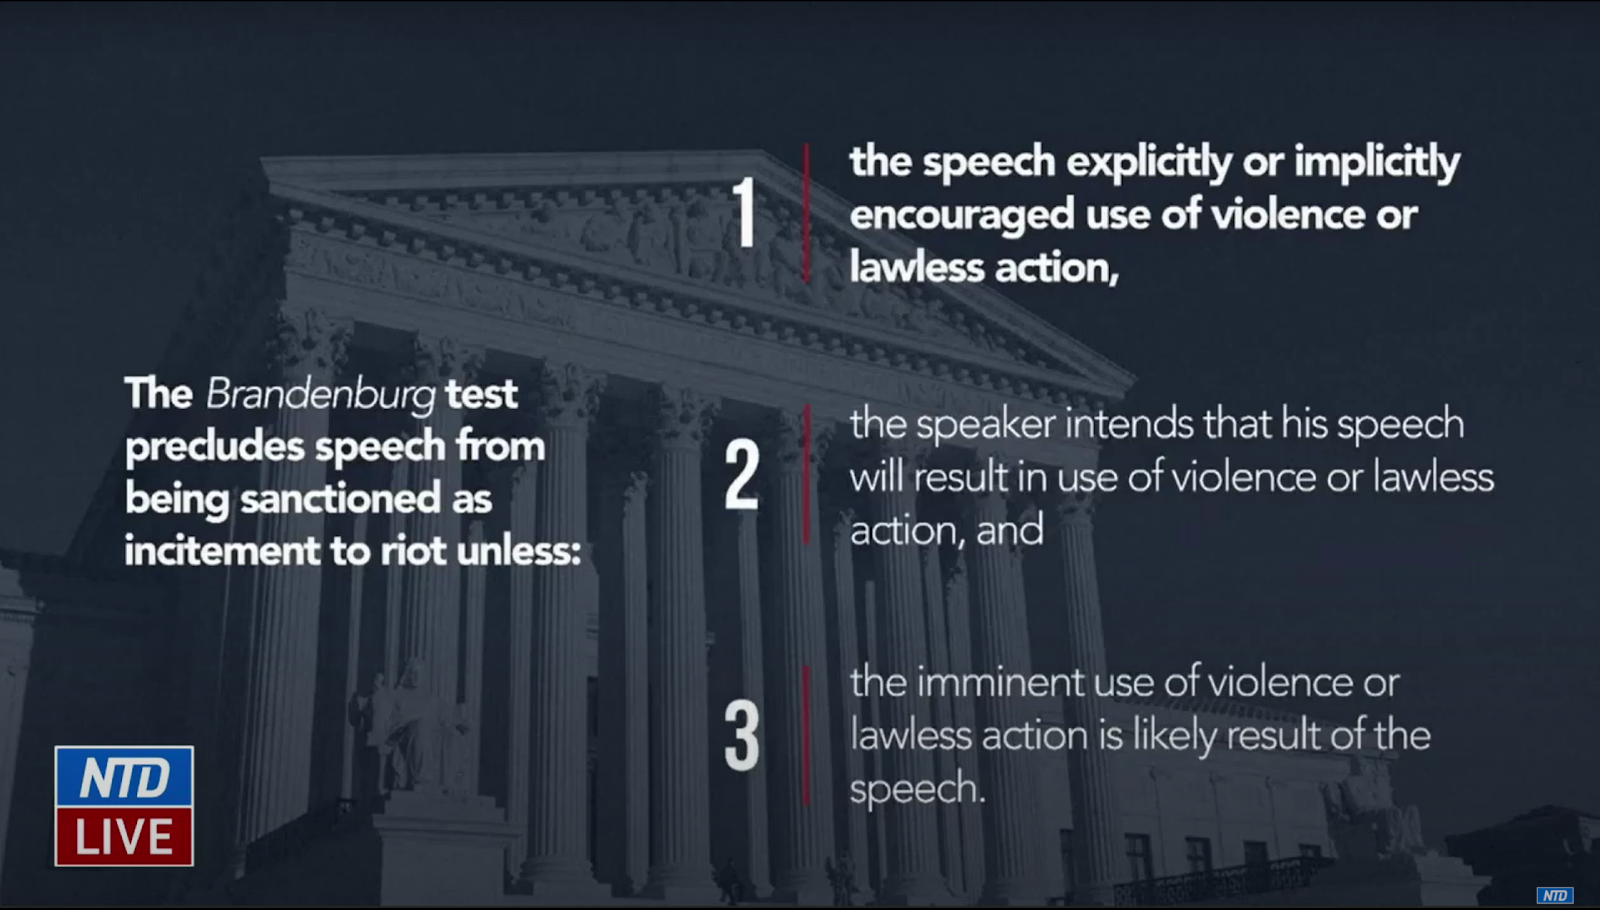 The Defense implored the Senate to use the Supreme Court's Brandenburg Test as a legal standard to determine if Trump's words on Jan. 6 constituted an incitement to riot as alleged in the single Article of Impeachment put forward by the House of Representatives.